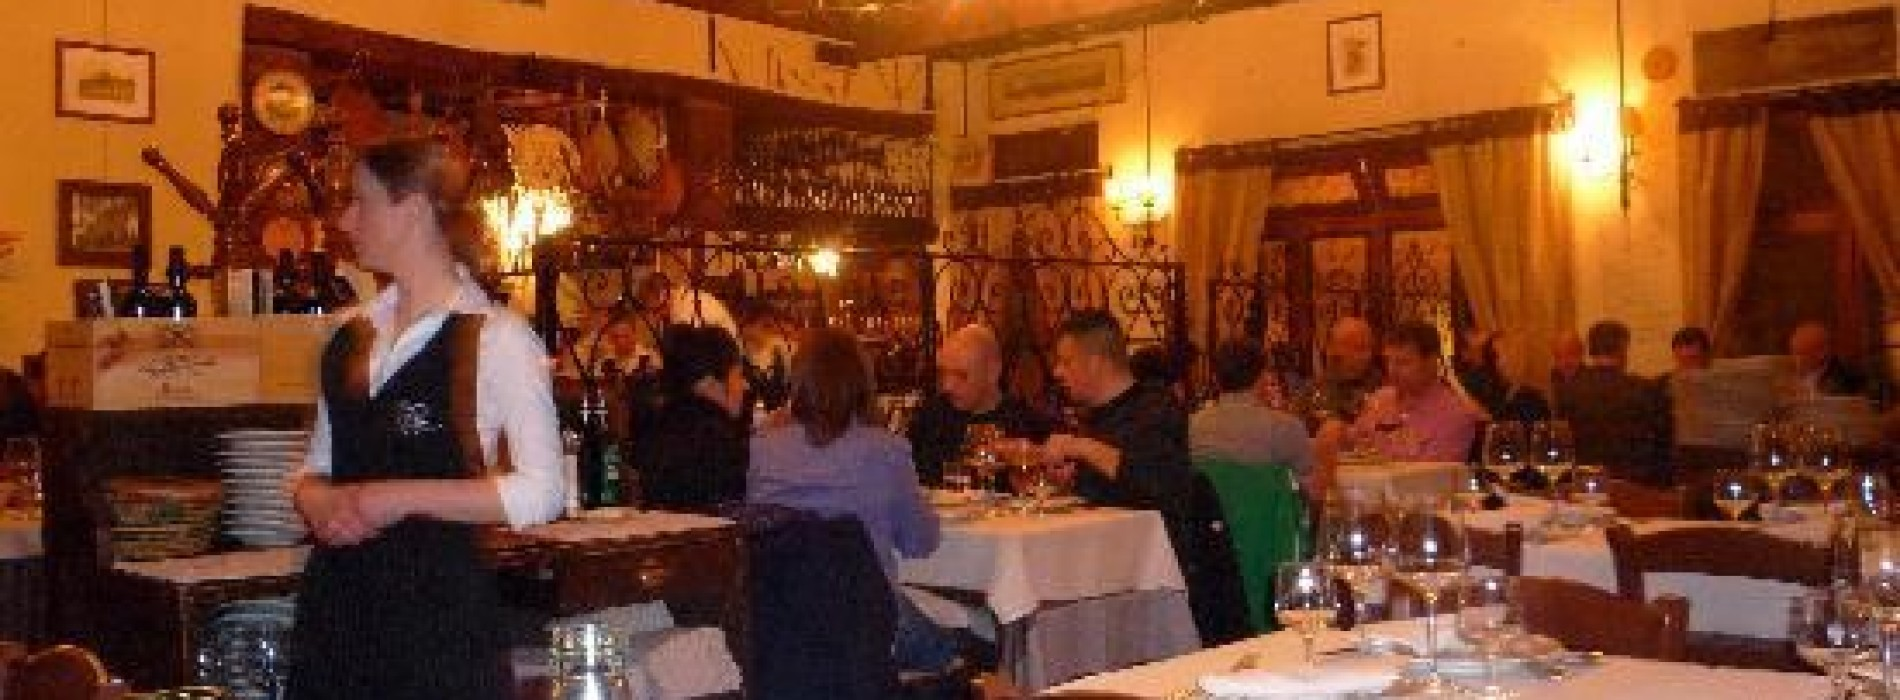 Top five cucina romana puntarella rossa for Cucina romana